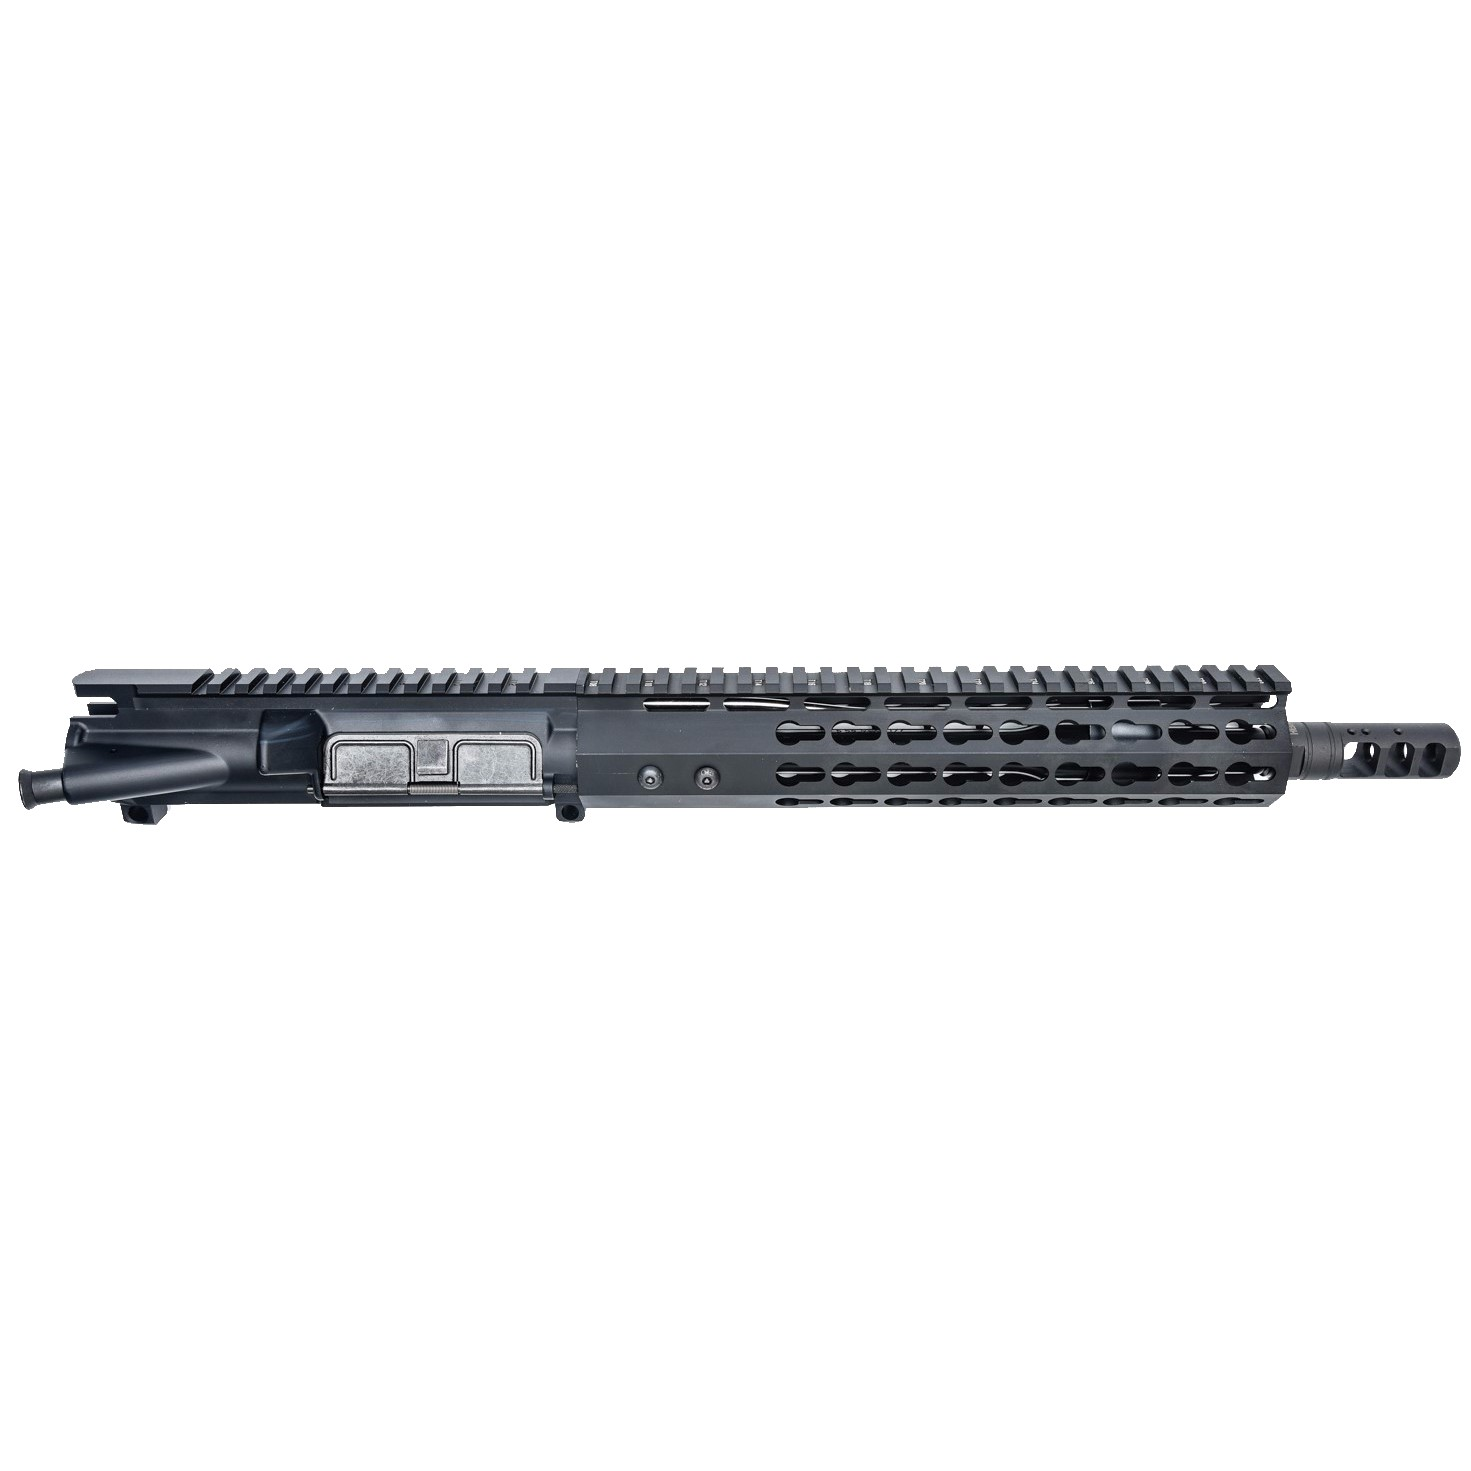 ar 15 upper assembly 10 5 5 56 x 45 10 cbc keymod ar 15 handguard rail